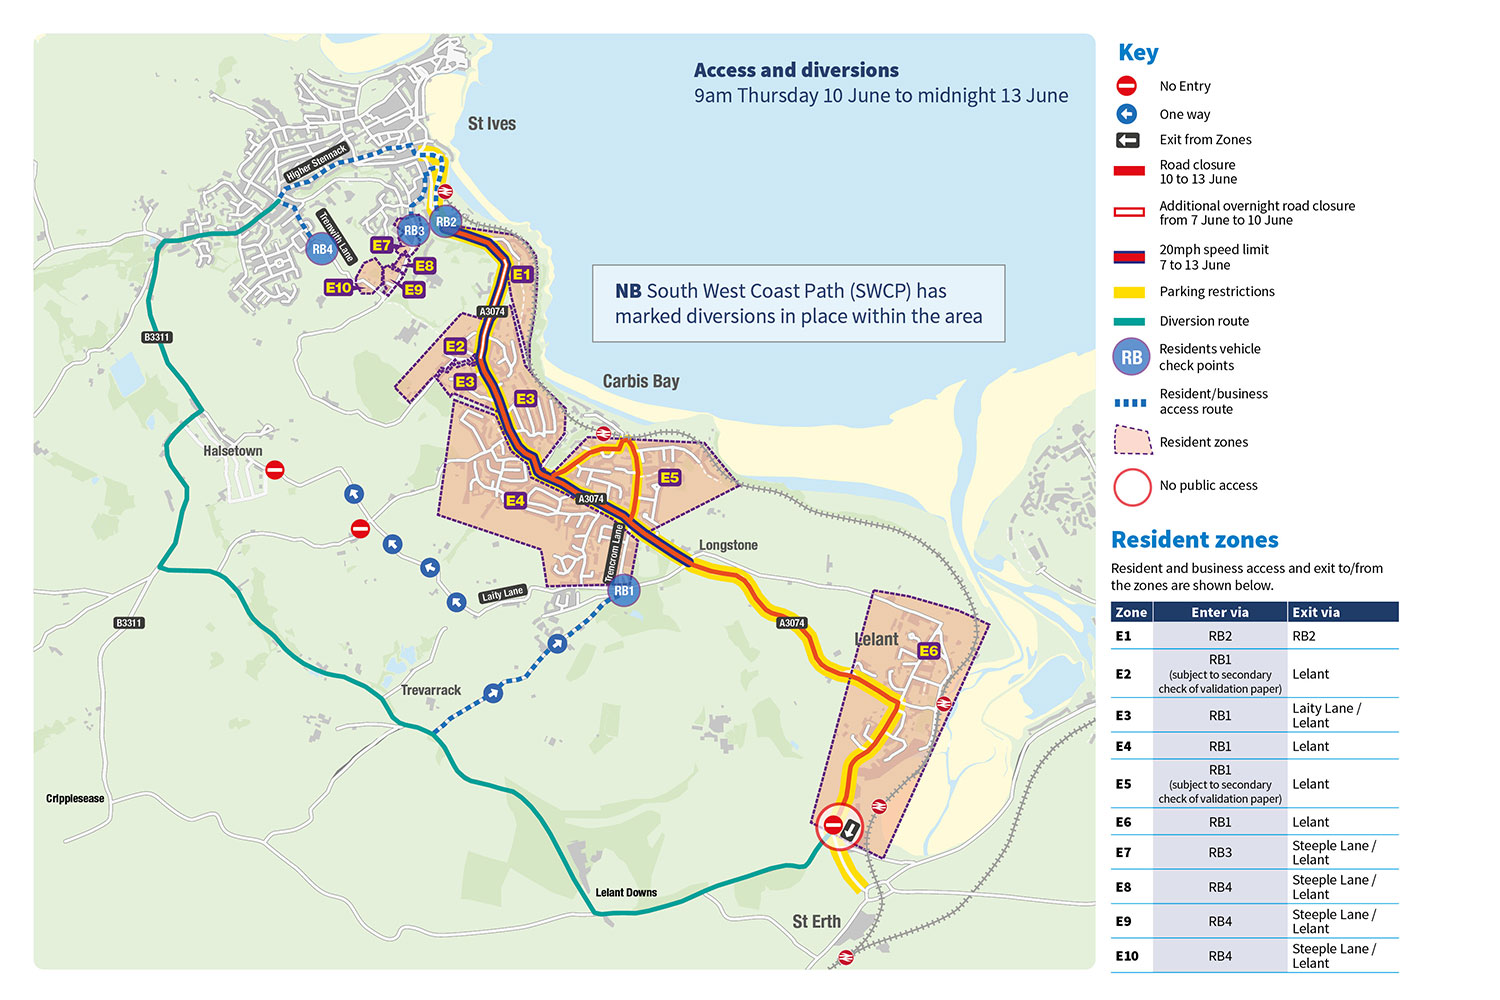 Map of access and diversion routes for G7 summit in St Ives.